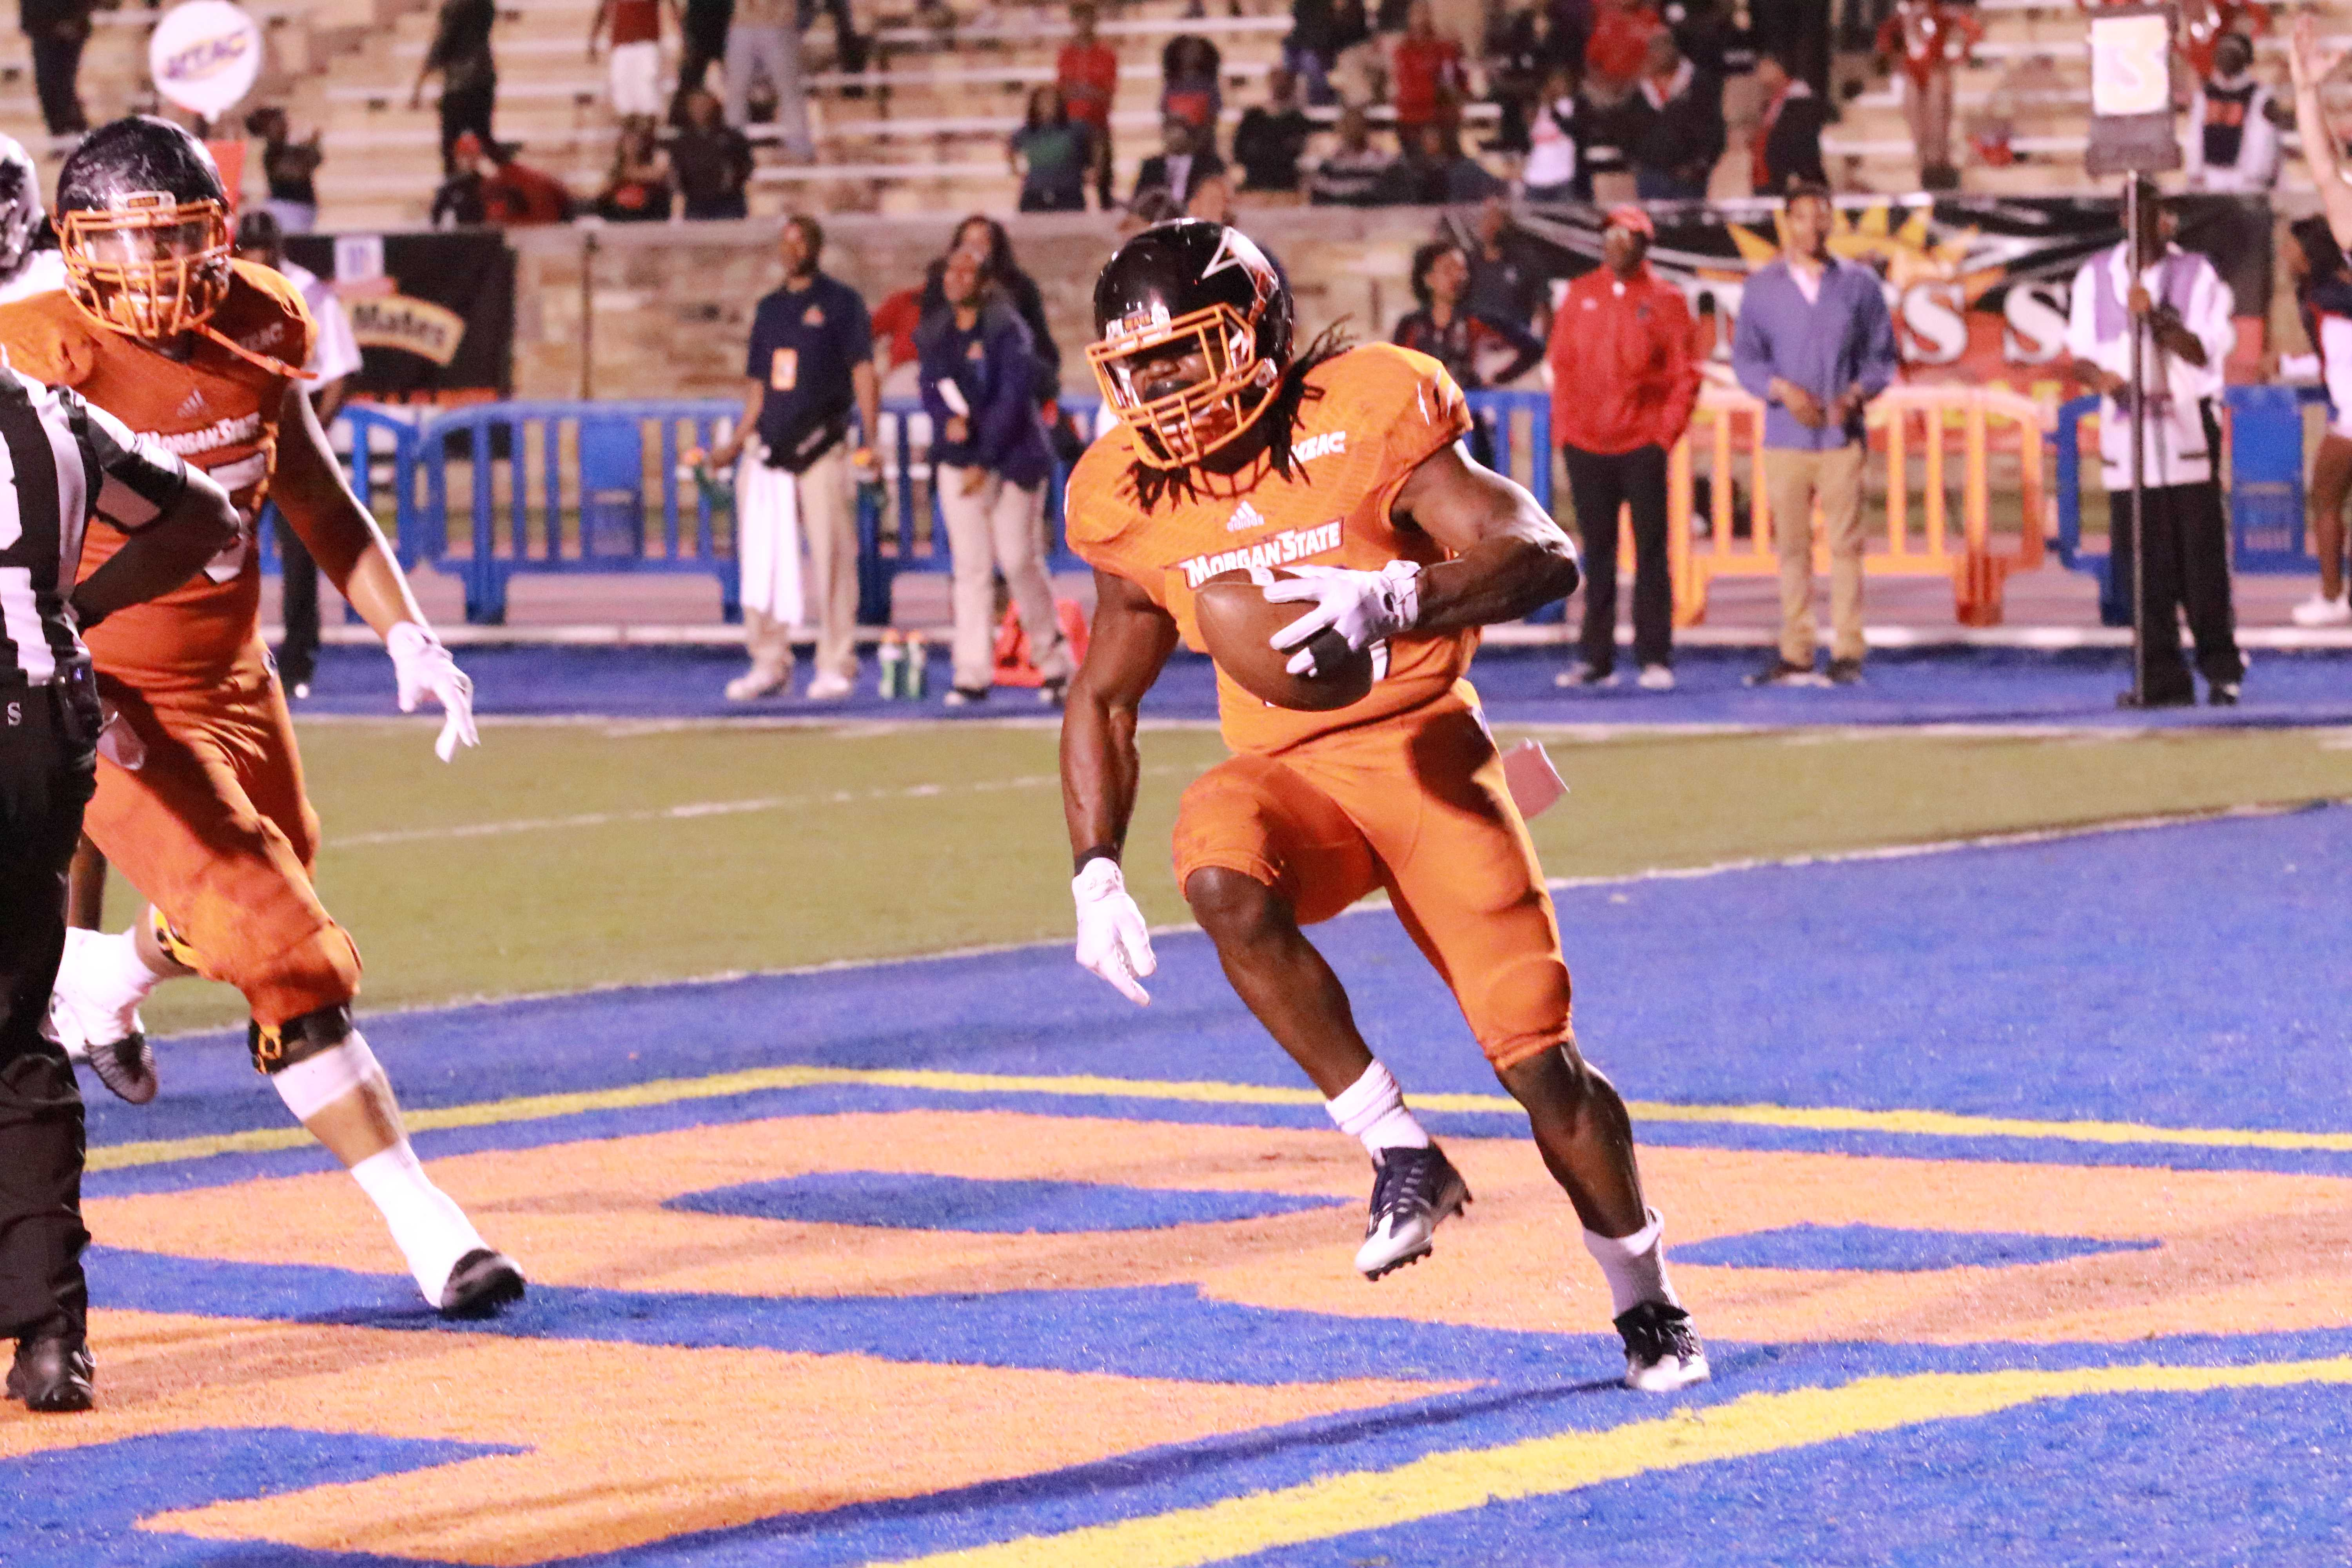 Sophomore running back Eric Harrell celebrates after scoring the go-ahead touchdown in the 4th quarter. Photo by Terry Wright.